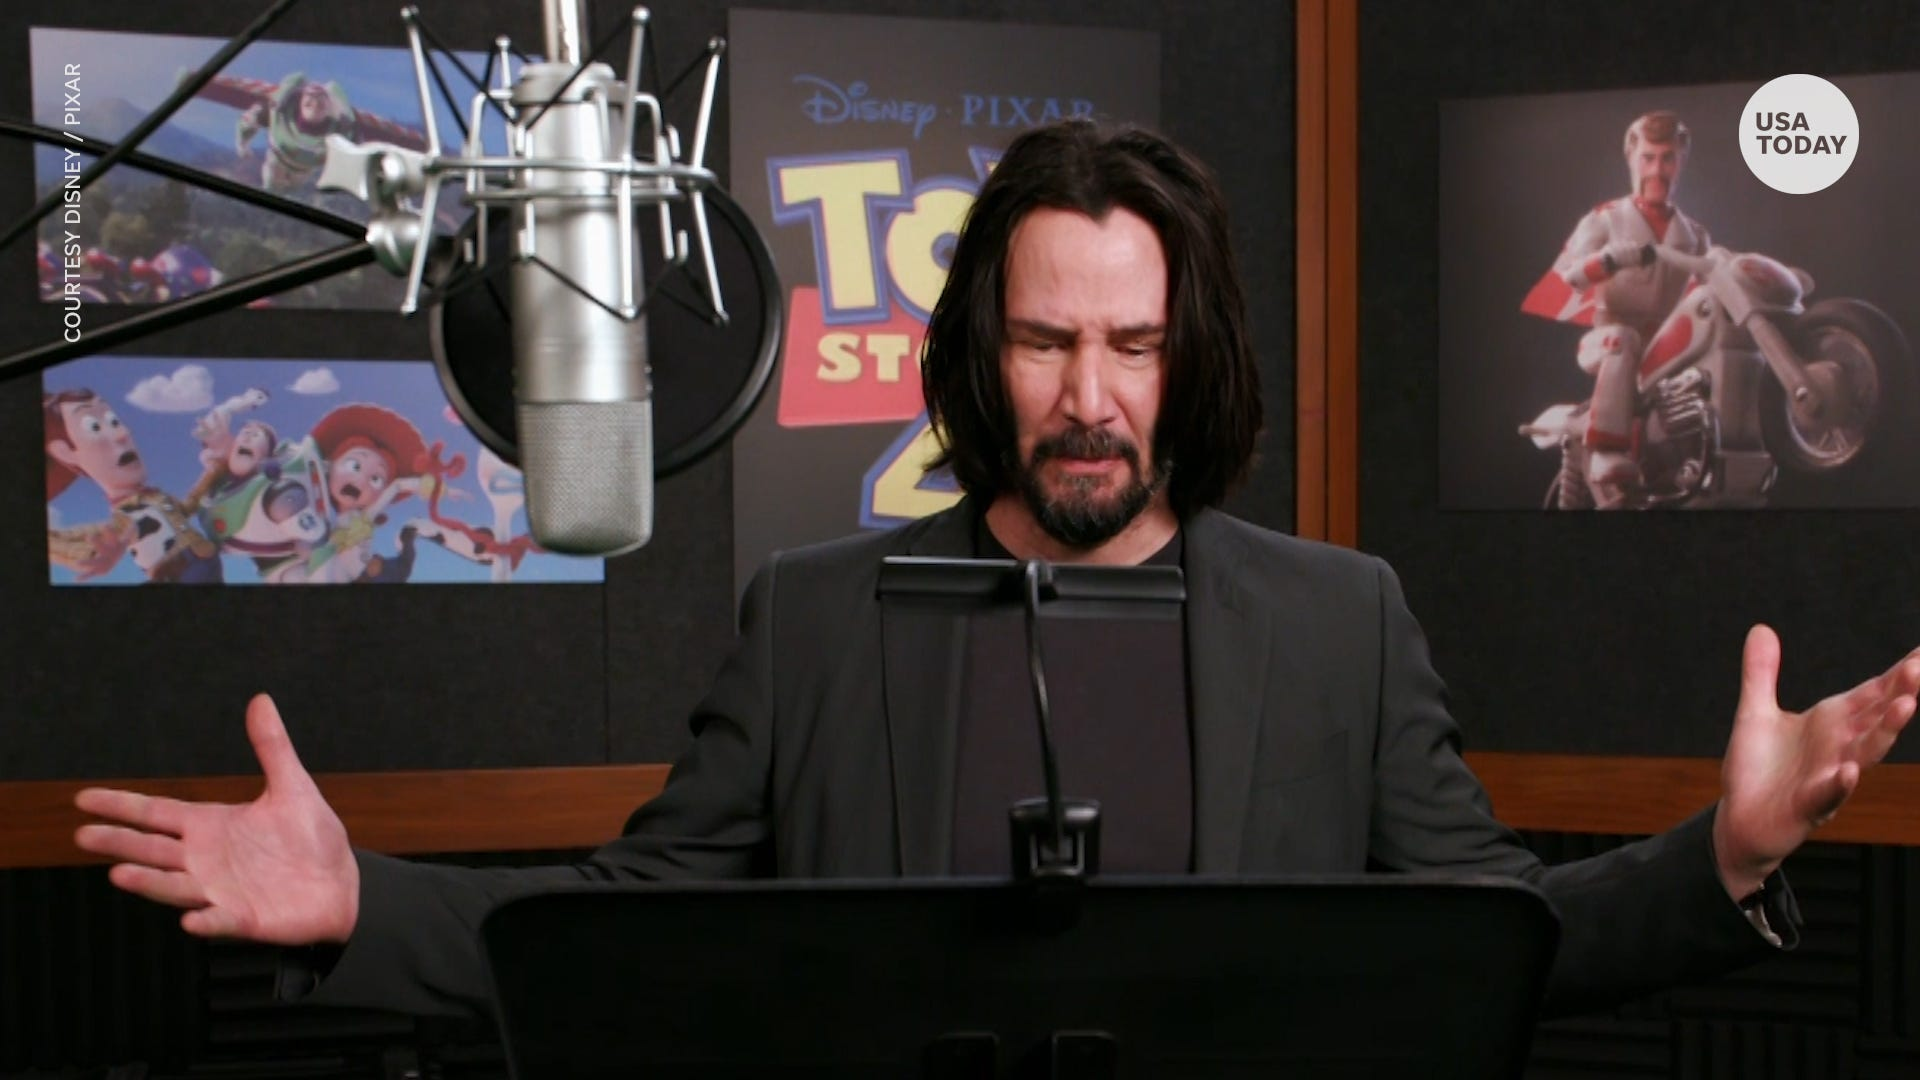 Keanu Reeves nails his role in 'Toy Story 4'